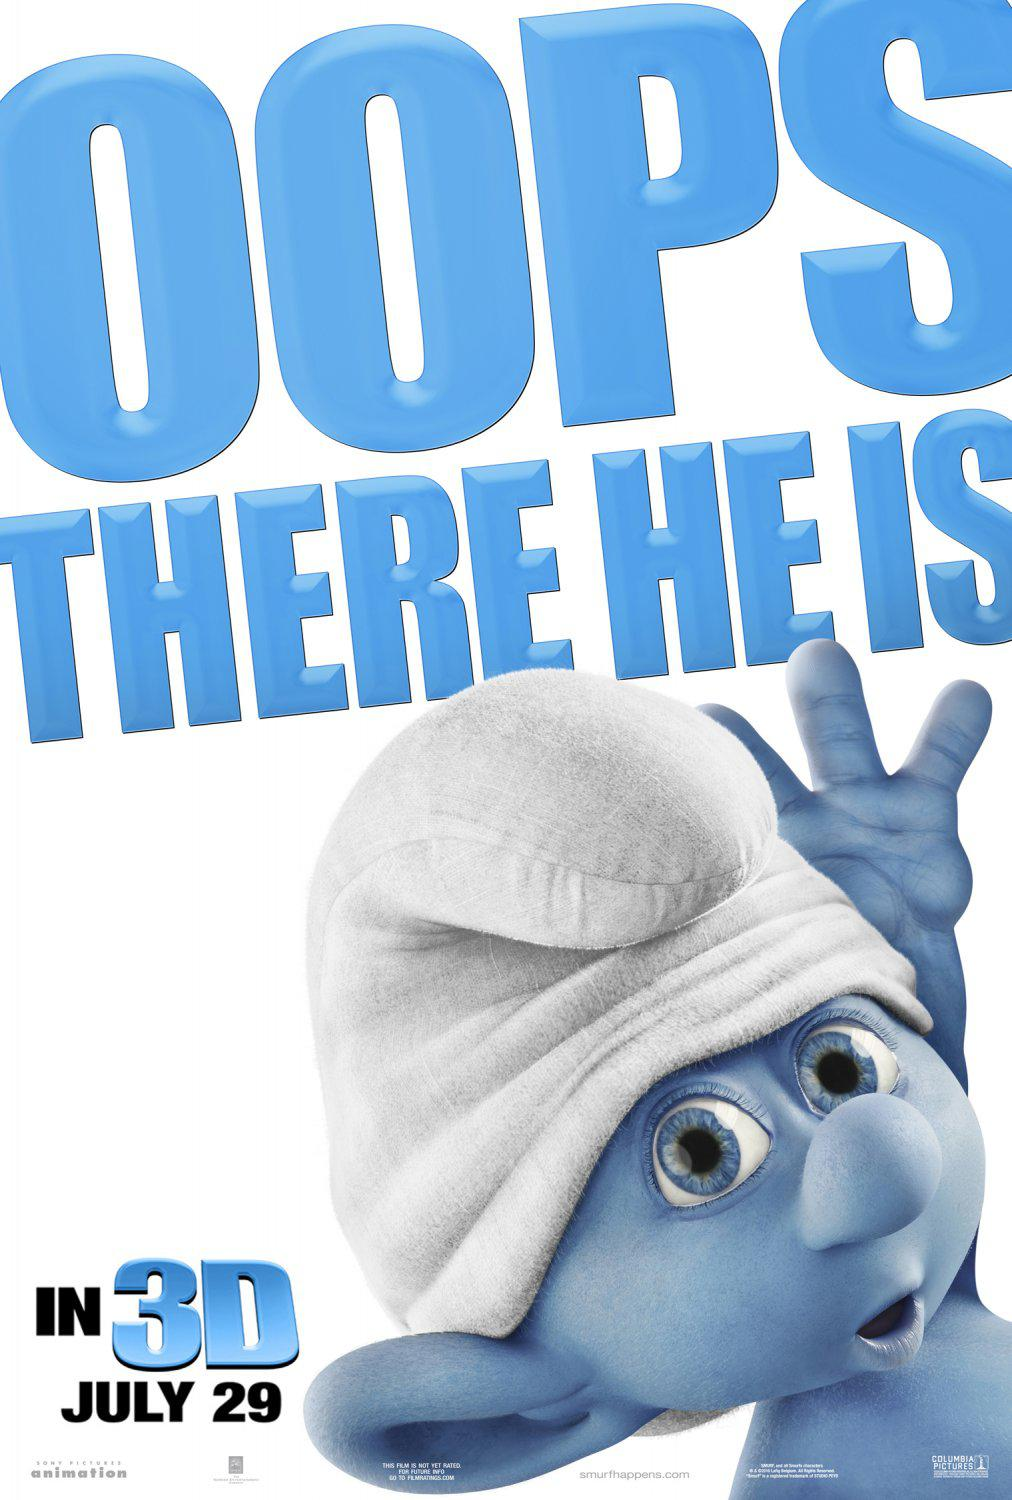 Film I Puffi in 3D - Movie Smurfs in 3D - Oops there he is